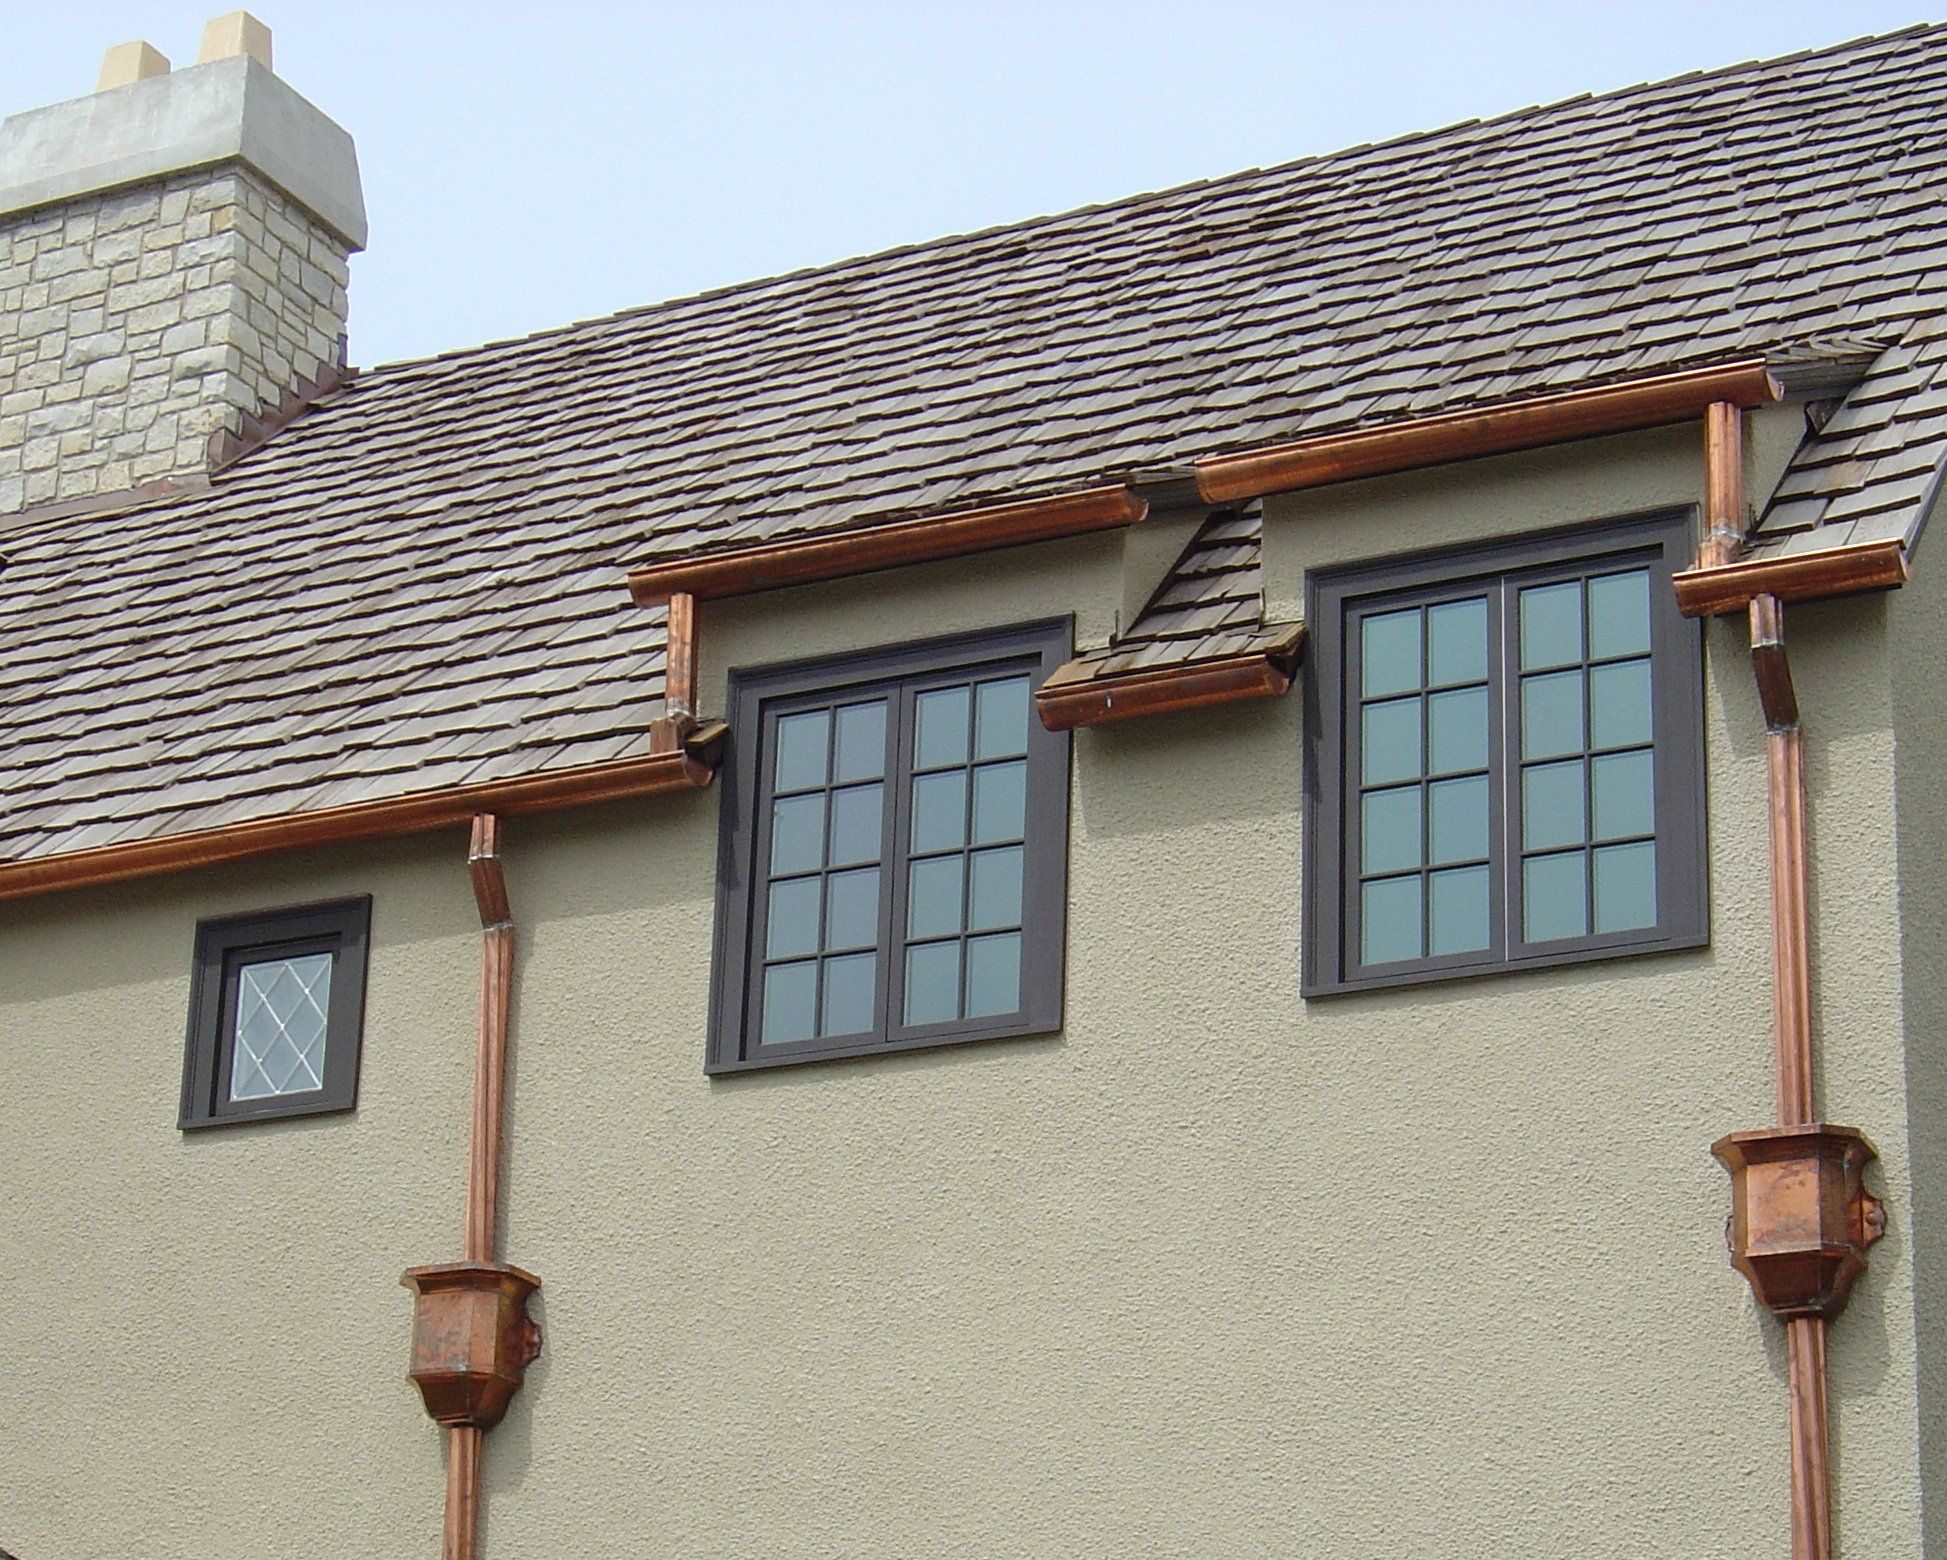 Guttercleaning In South Sanfrancisco For You House Gutters Gutter Colors House Styles